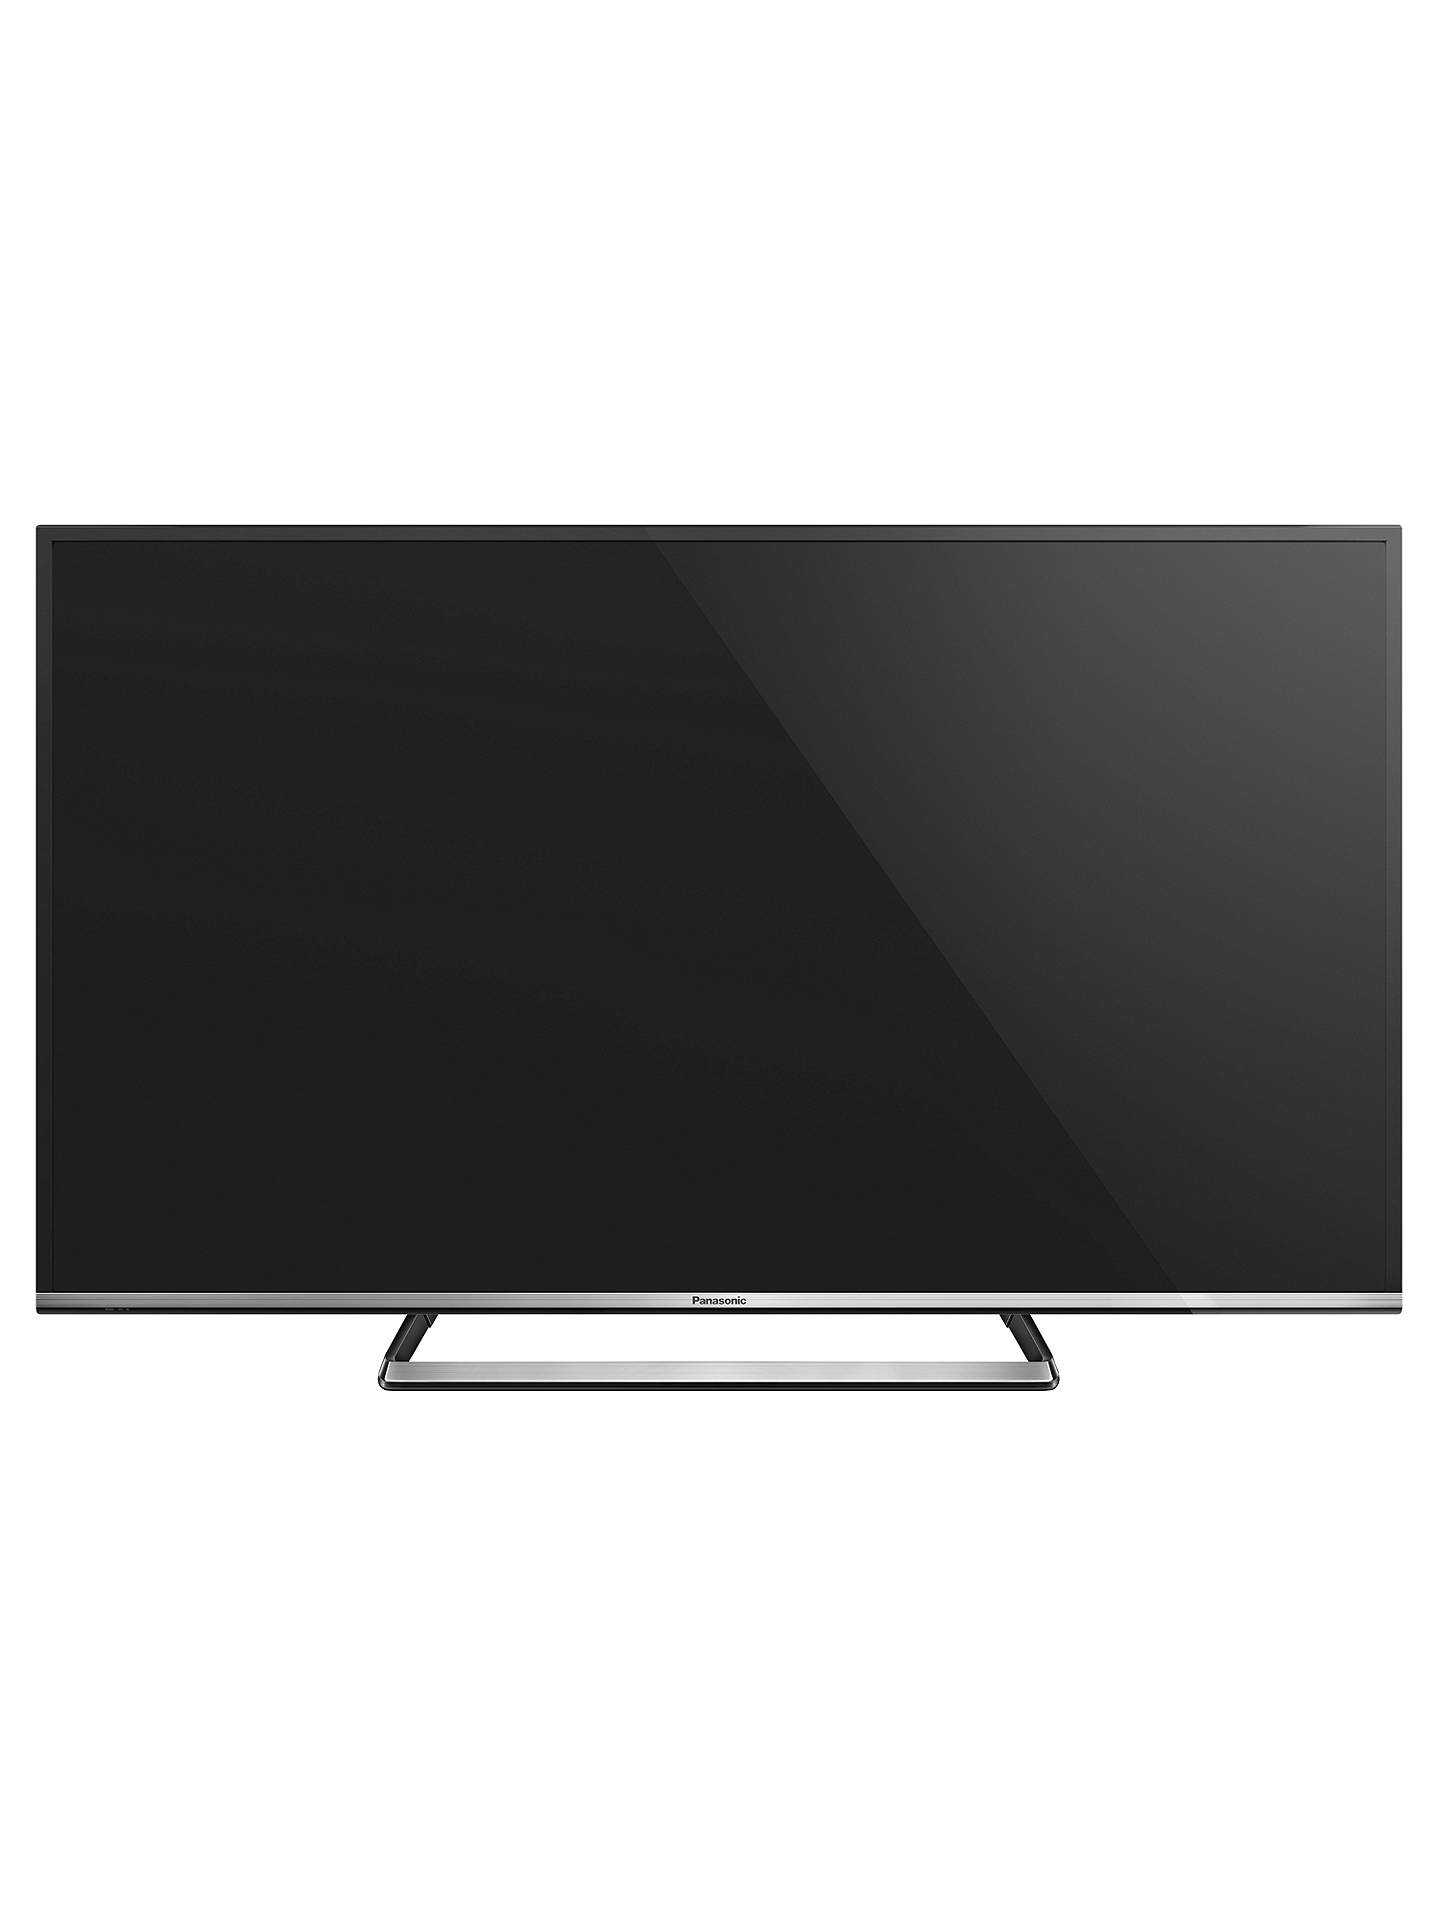 "... BuyPanasonic Viera TX-50CS520B LED HD 1080p Smart TV, 50"" with  Freetime, ..."